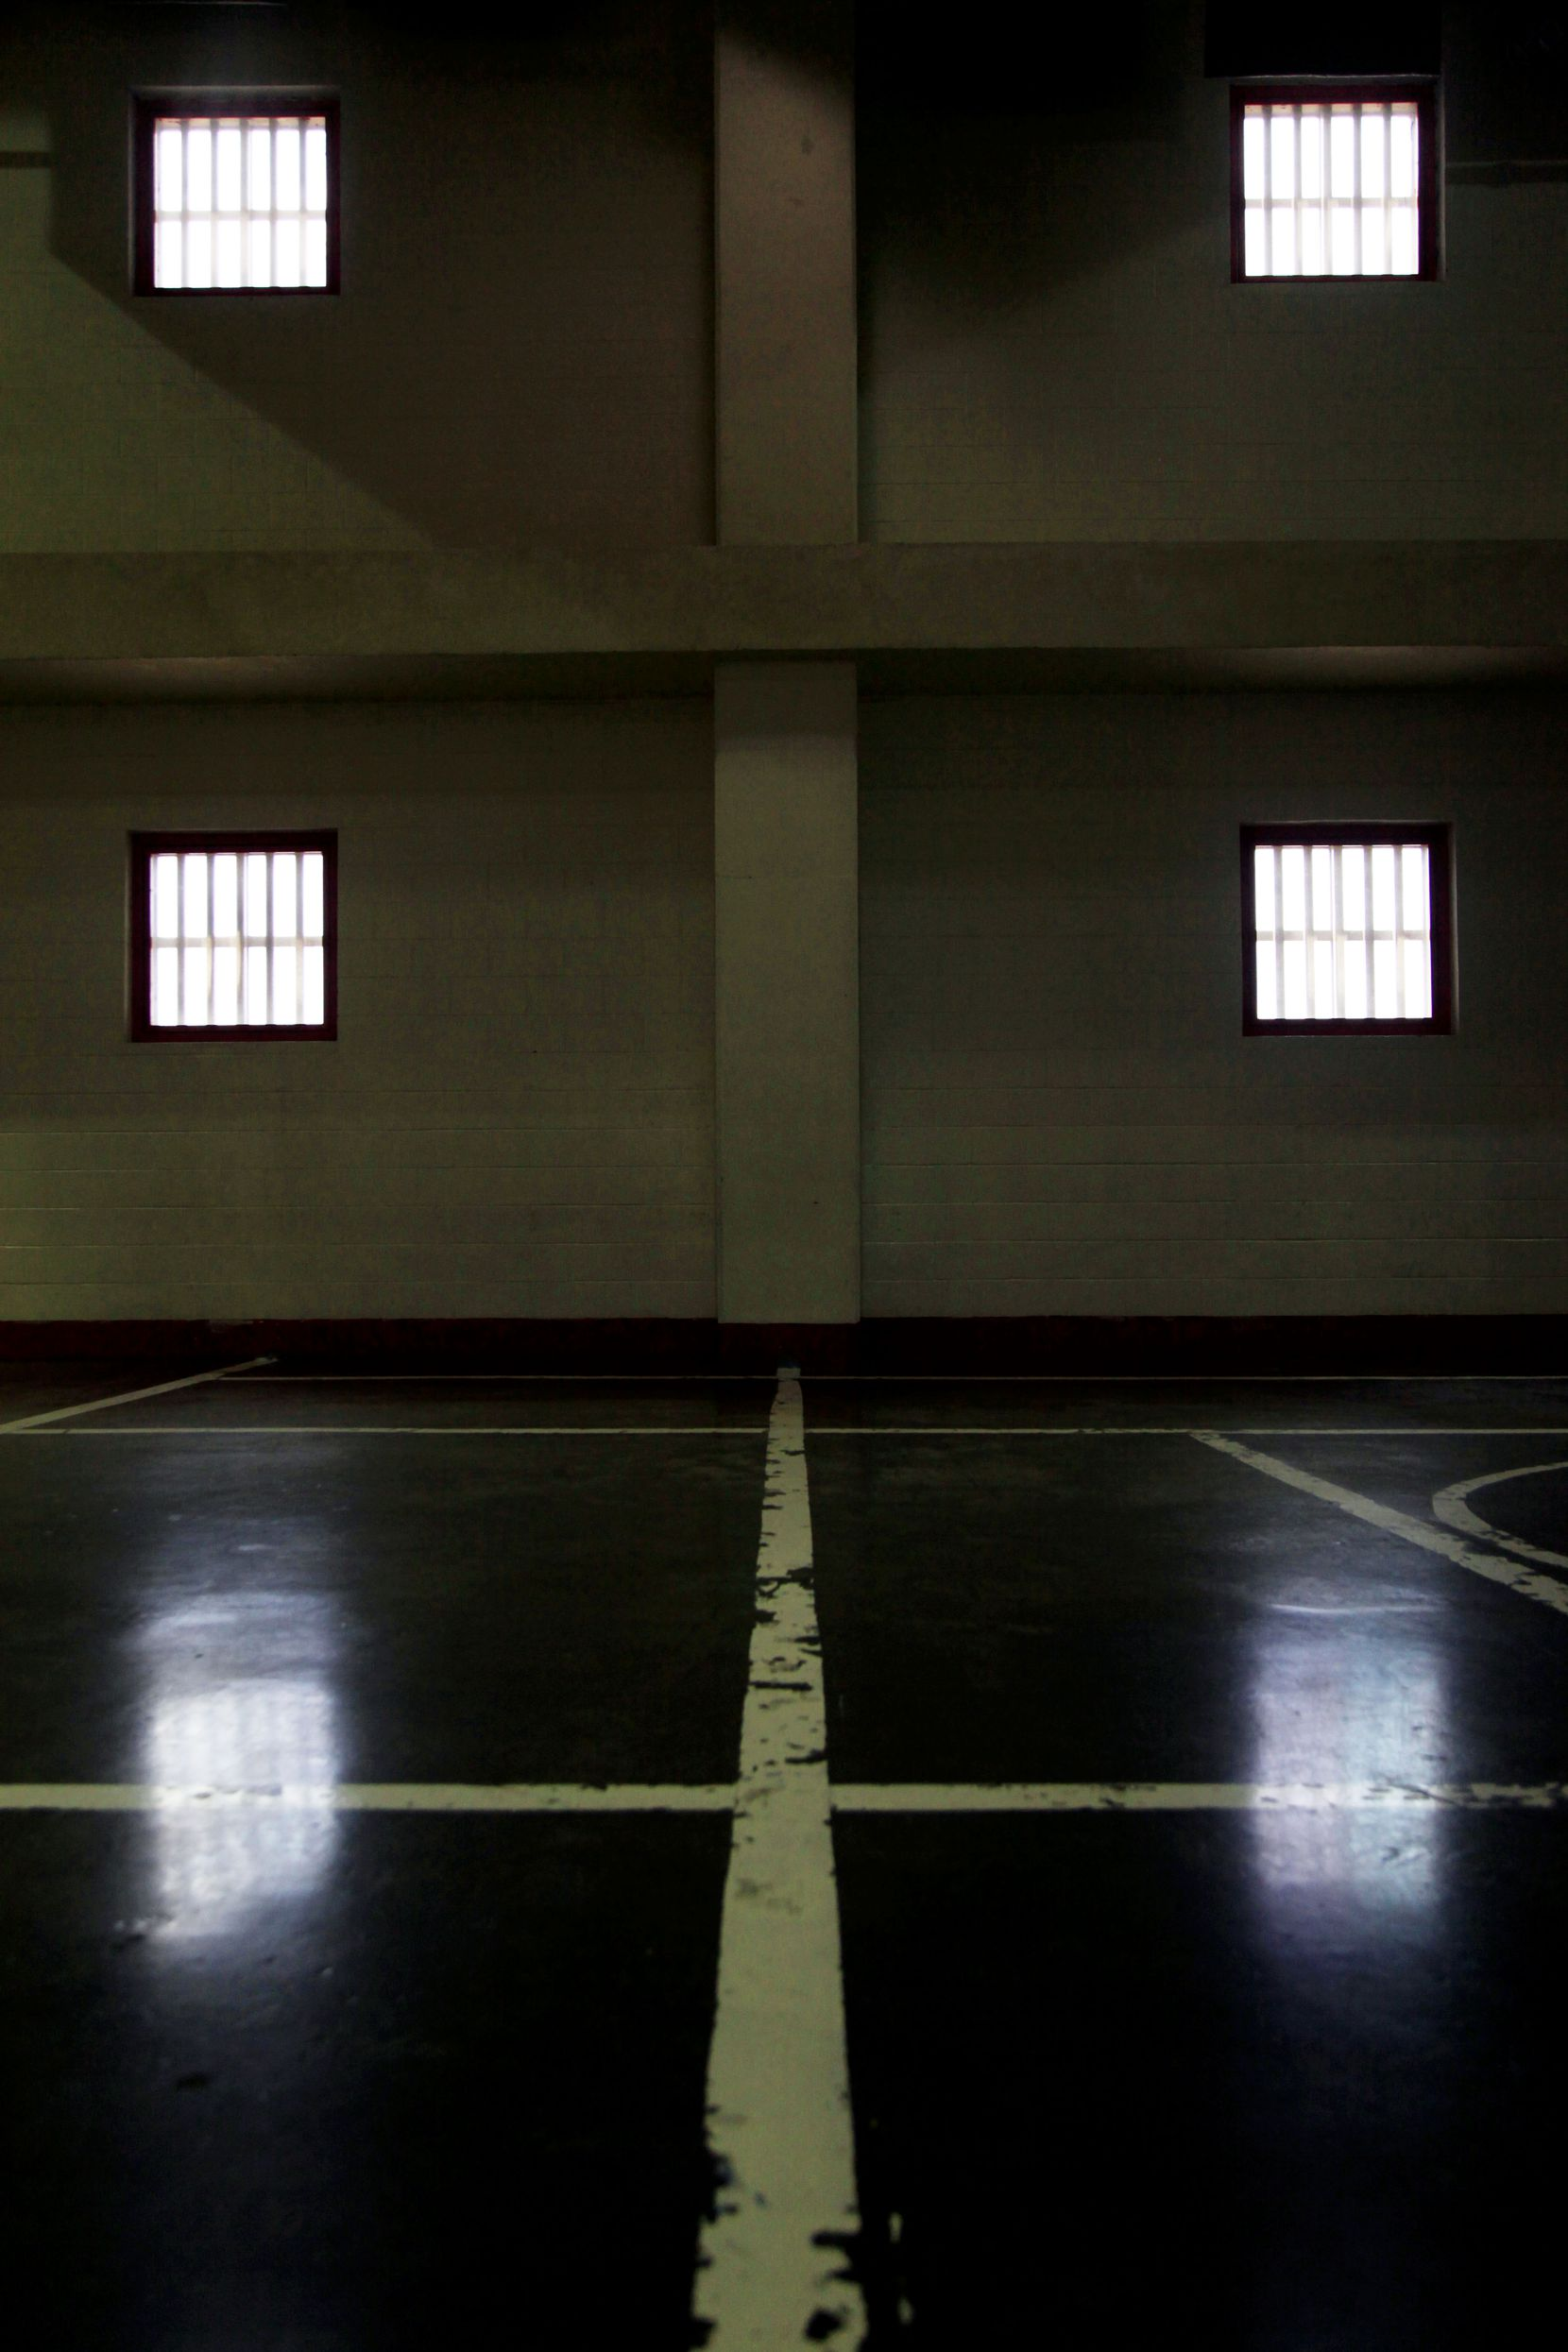 The gym inside the former Jesse R. Dawson State Jail on Aug. 29, 2013 in Dallas. The jail held up to 2,200 offenders with state jail felonies and two-year maximum sentences.